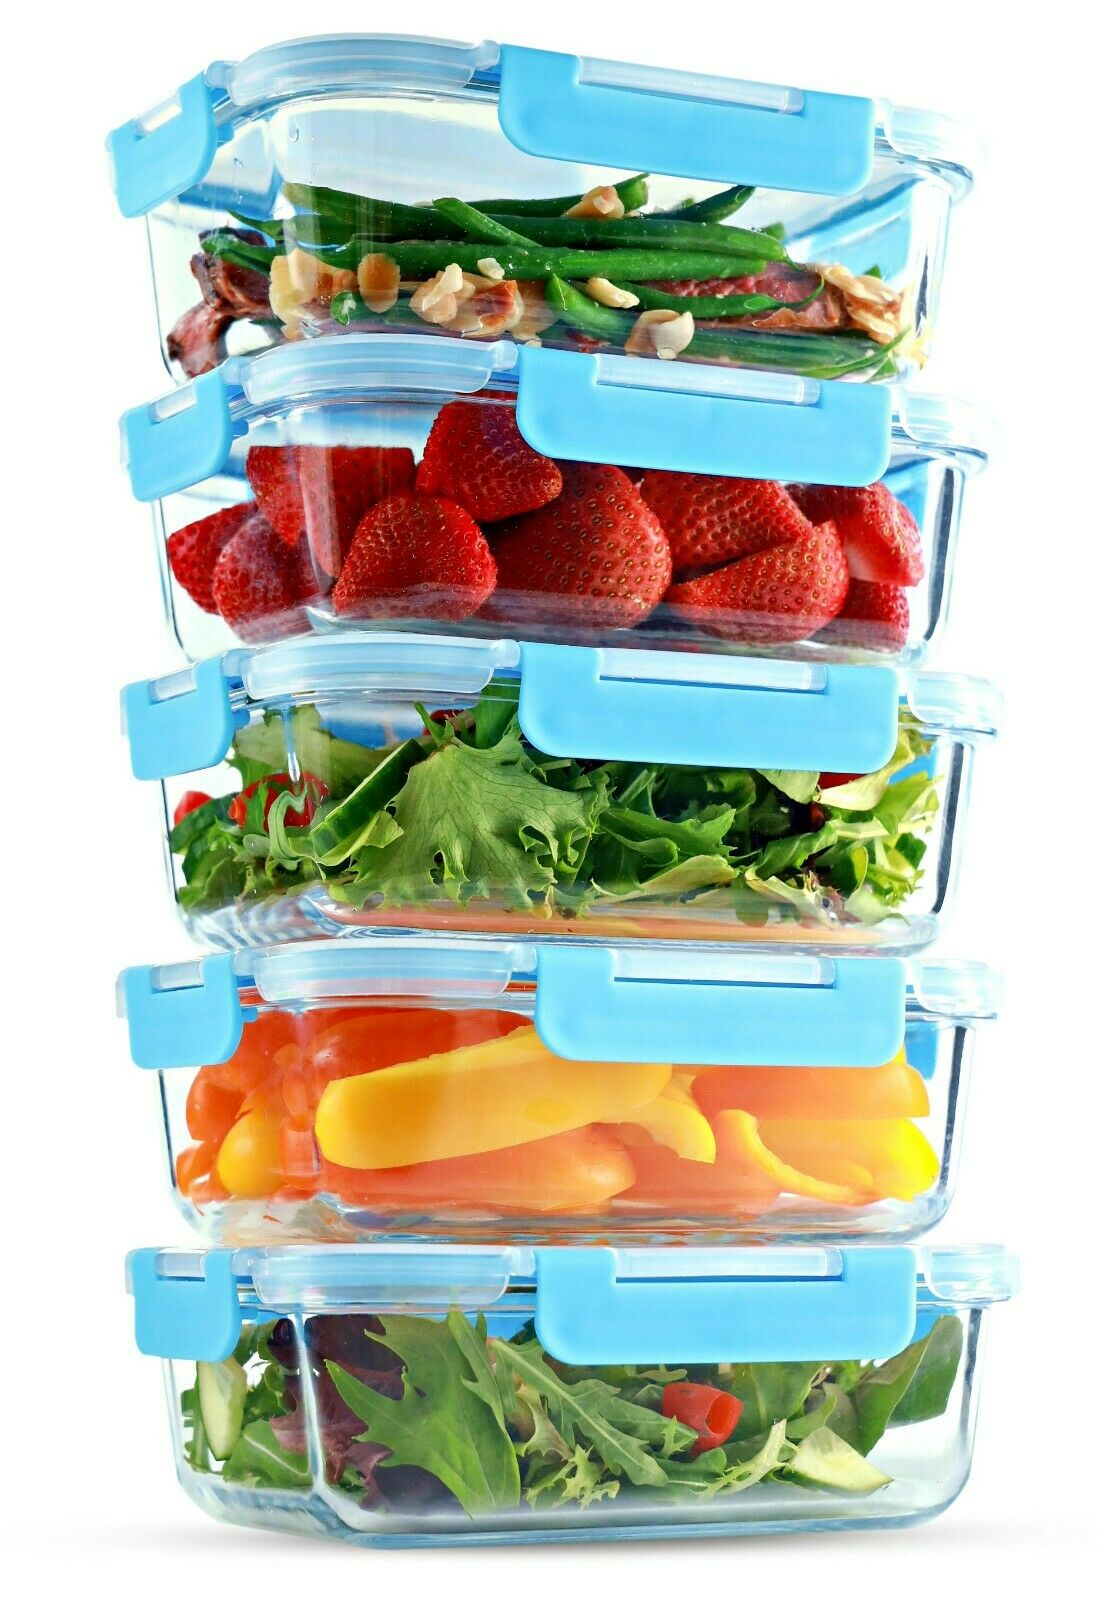 Glass Food Storage Containers - Meal Prep Containers 1 Compartment, 35 Oz 5 Pack 1